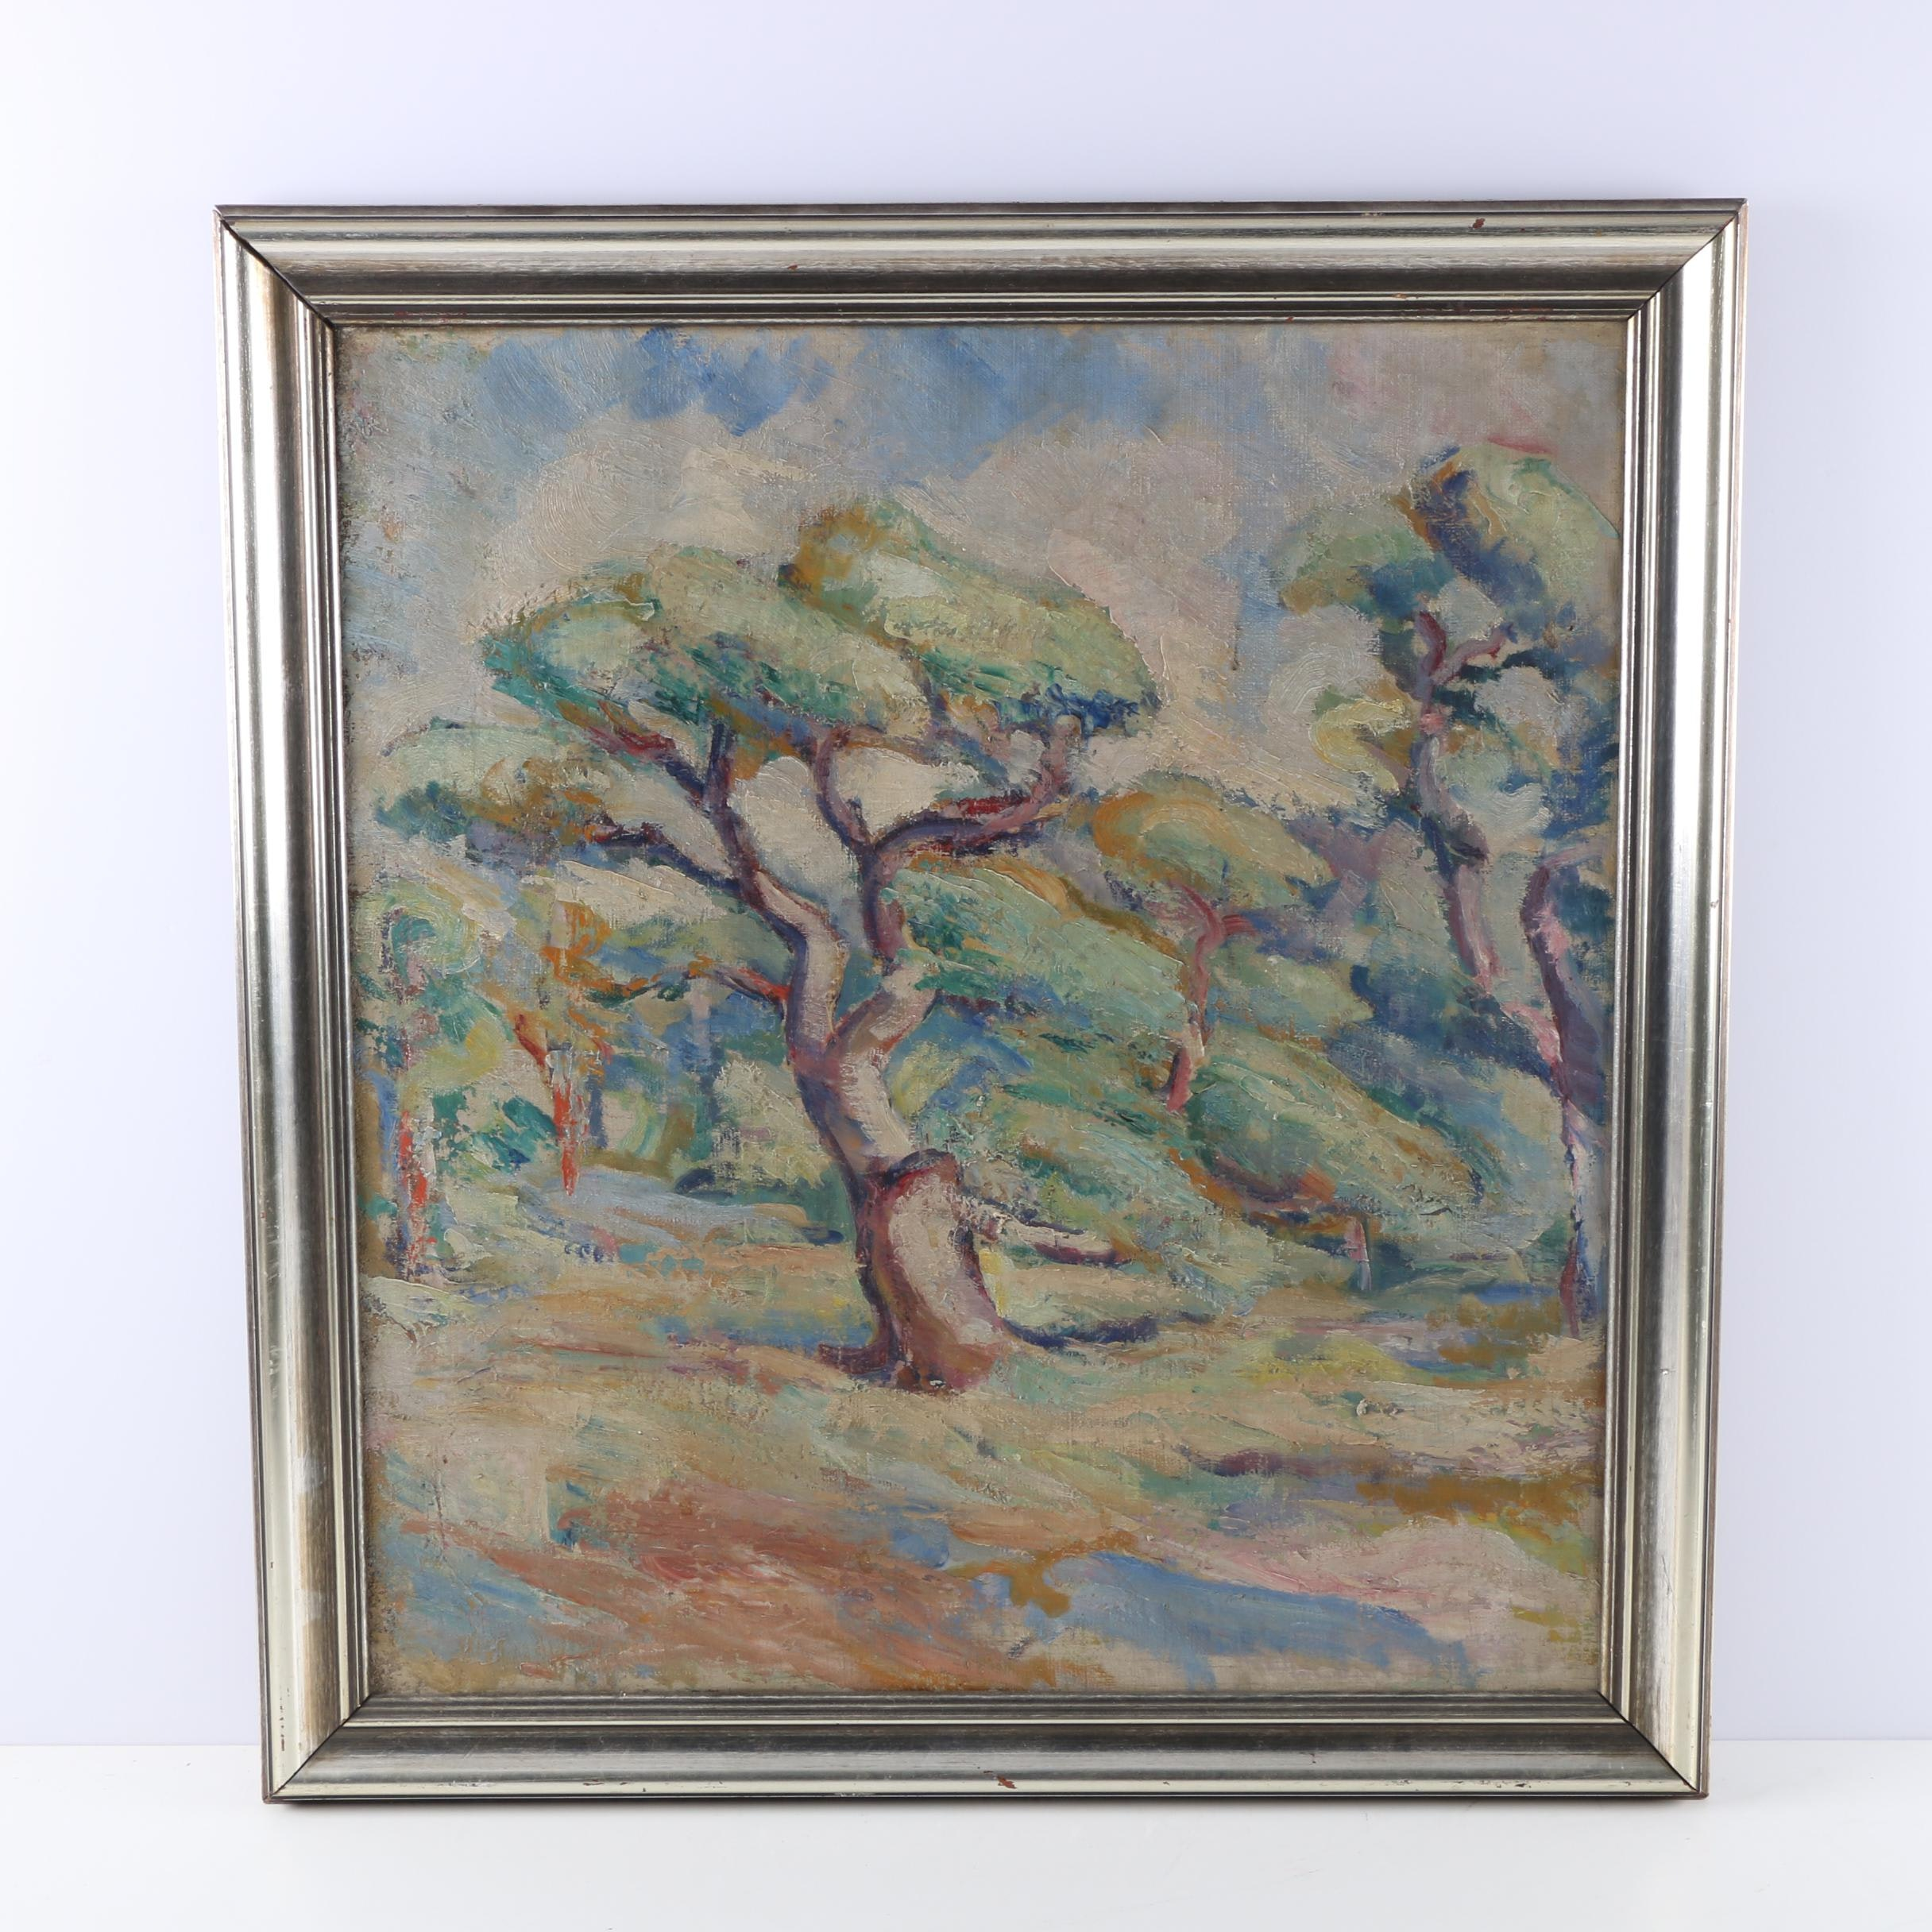 Oil on Canvas Expressionist Landscape Painting